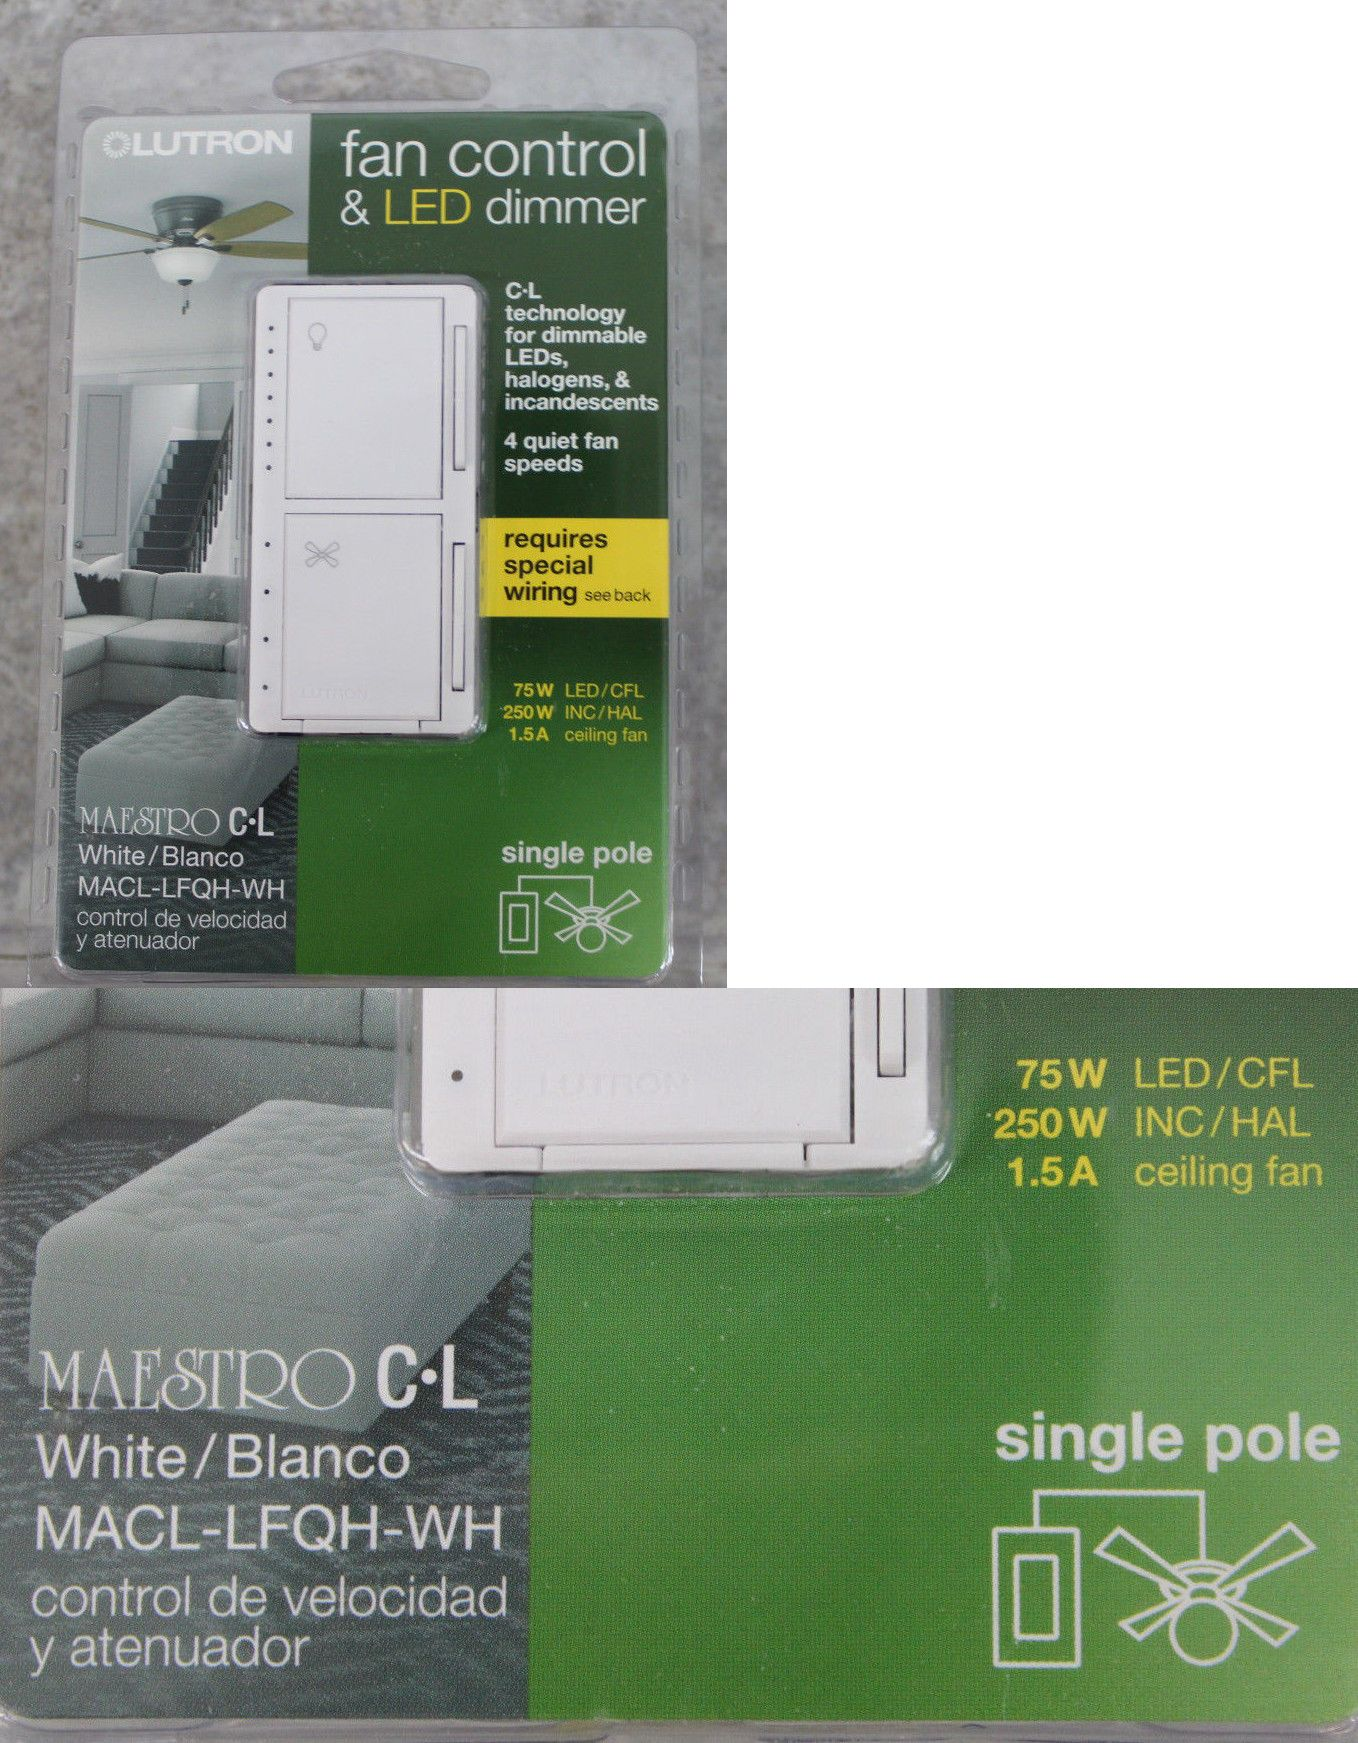 dimmers 41984 lutron maestro fan control and led dimmer white macl electrical  [ 1358 x 1743 Pixel ]